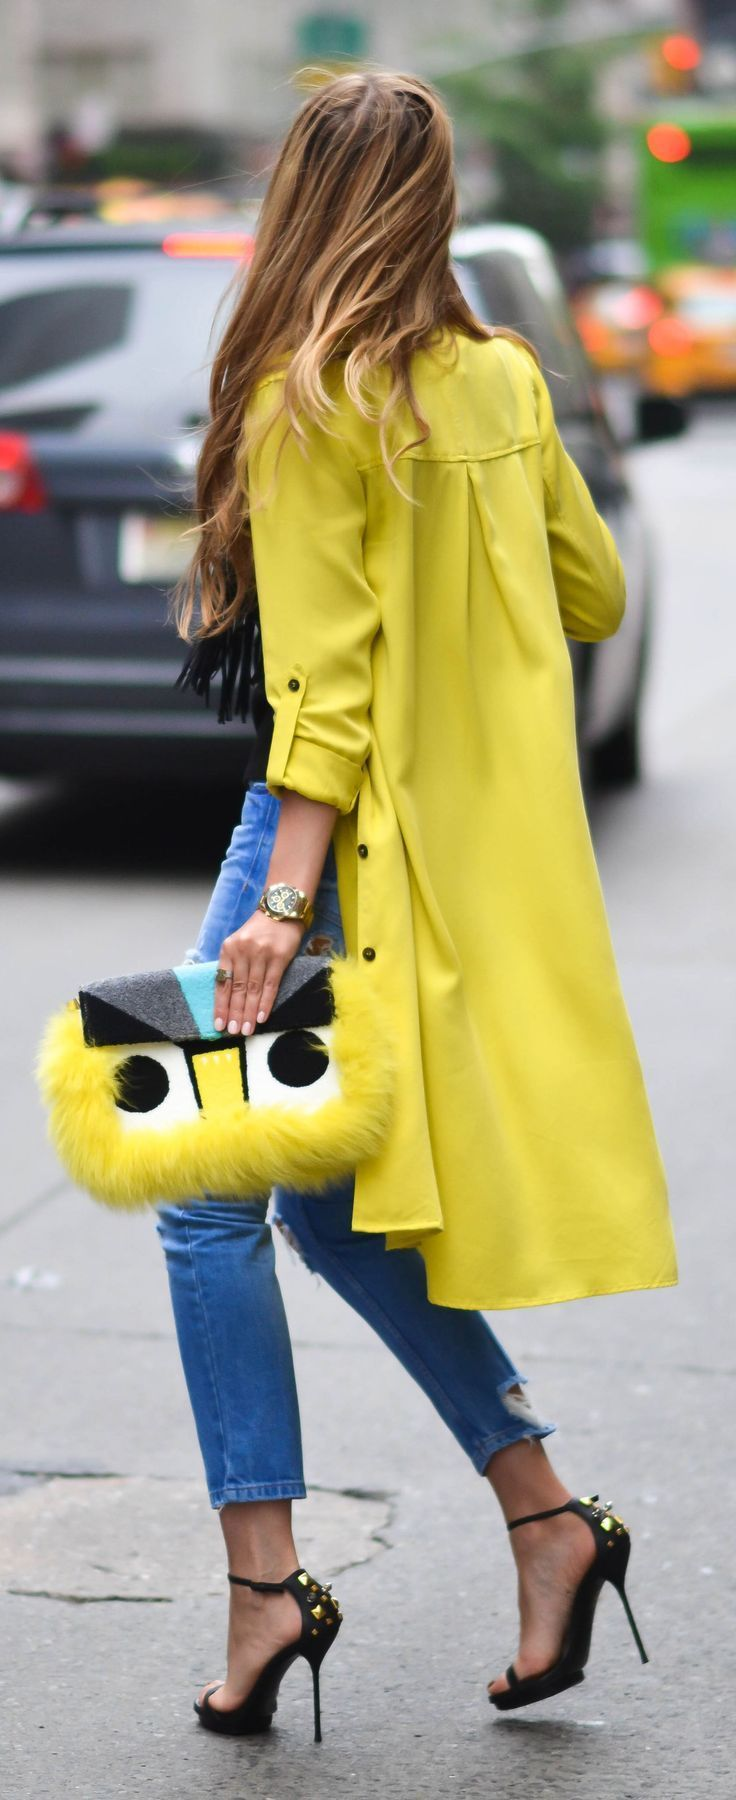 Streetstyle inspiration ~ with Canary Yellow trench coat + Fendi bag Loved by www.chicncheeky.com.au